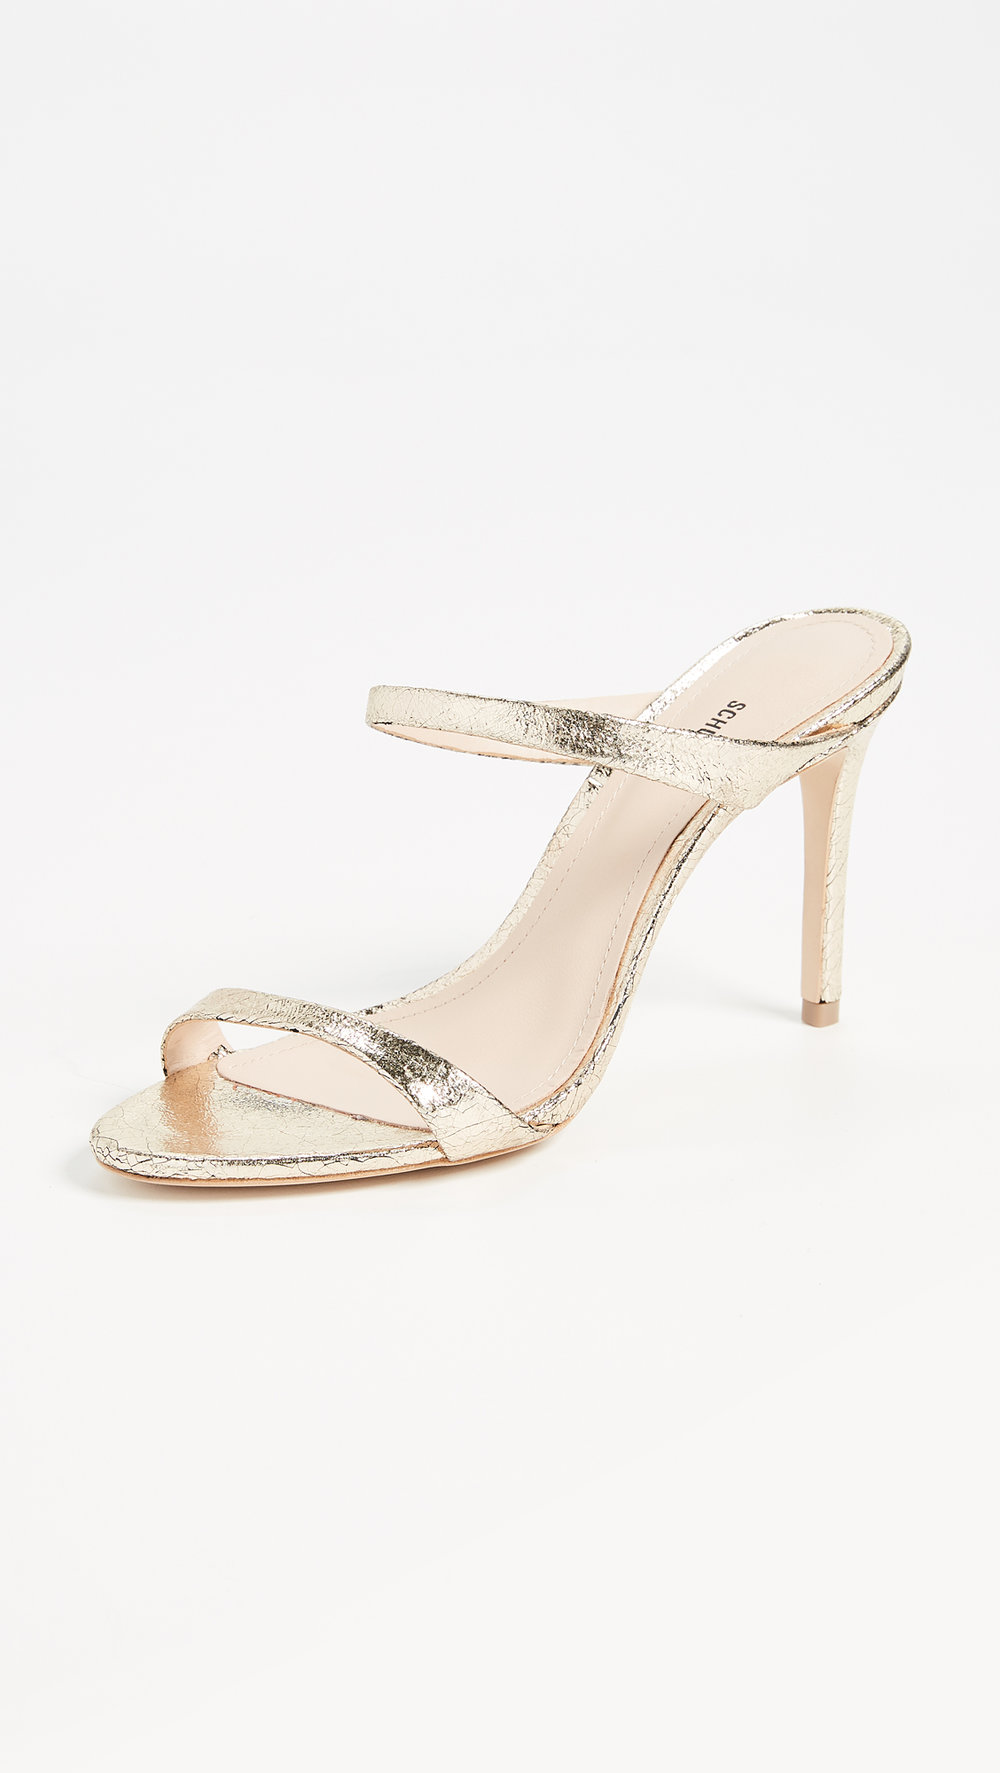 RAENNA MULES BY SCHUTZ, $170 AT SHOPBOP.COM